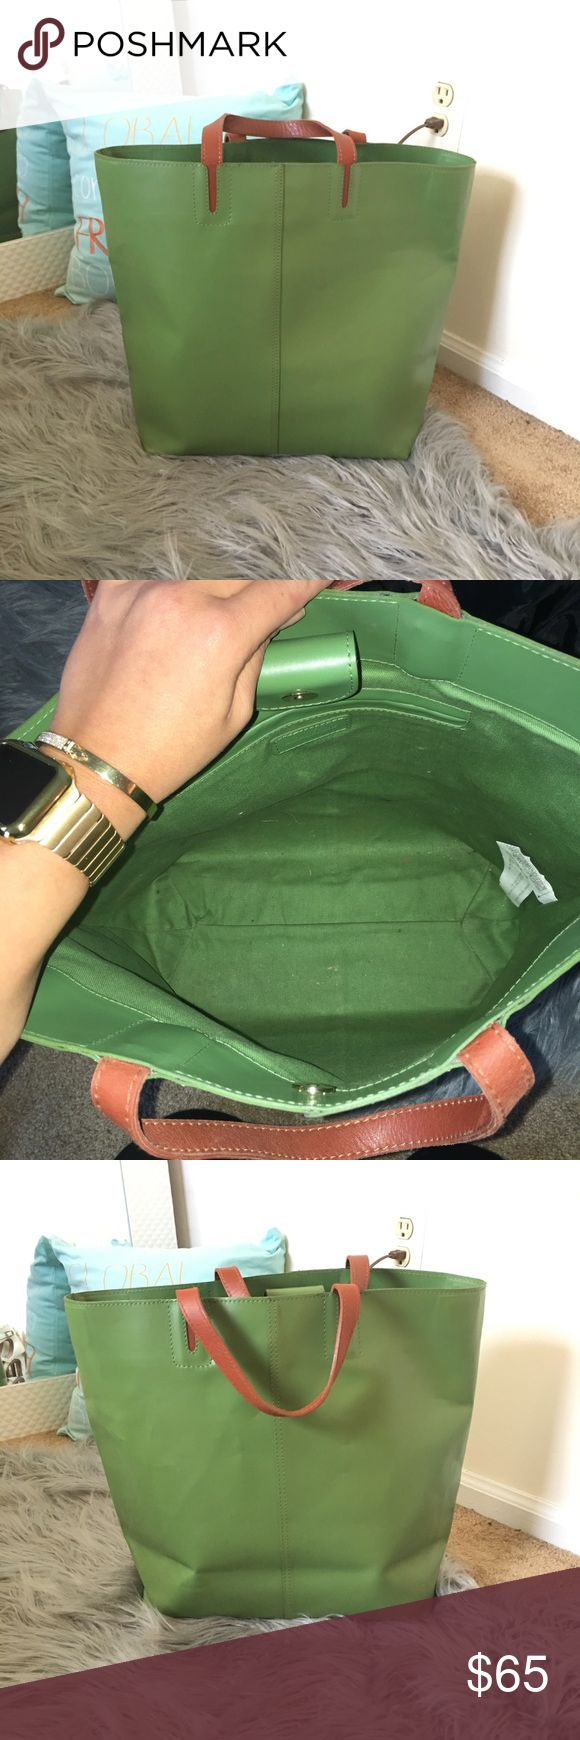 Green Zara tote In good condition. No stains. Its very clean inside. Worn handful of times. Some wear on corners but nothing noticeable! Its been folded for a while and pictures show some marks on the bag. Zara Bags Totes